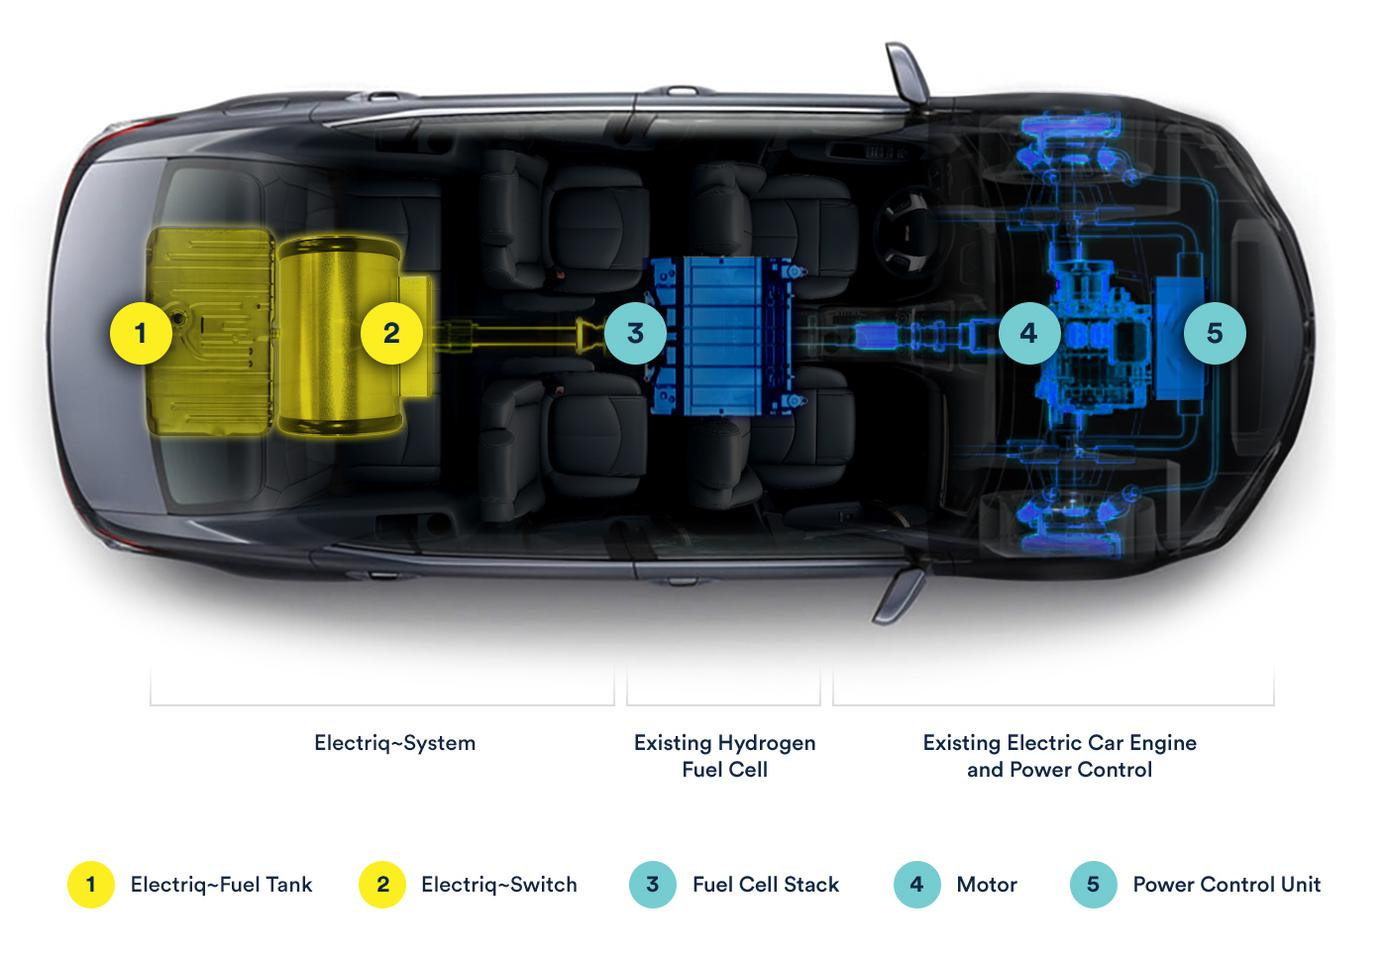 The Electriq system replaces a troublesome compressed hydrogen tank with a simple liquid fuel tank and chemical catalyst. Everything in blue is a regular fuel cell-electric powertrain/